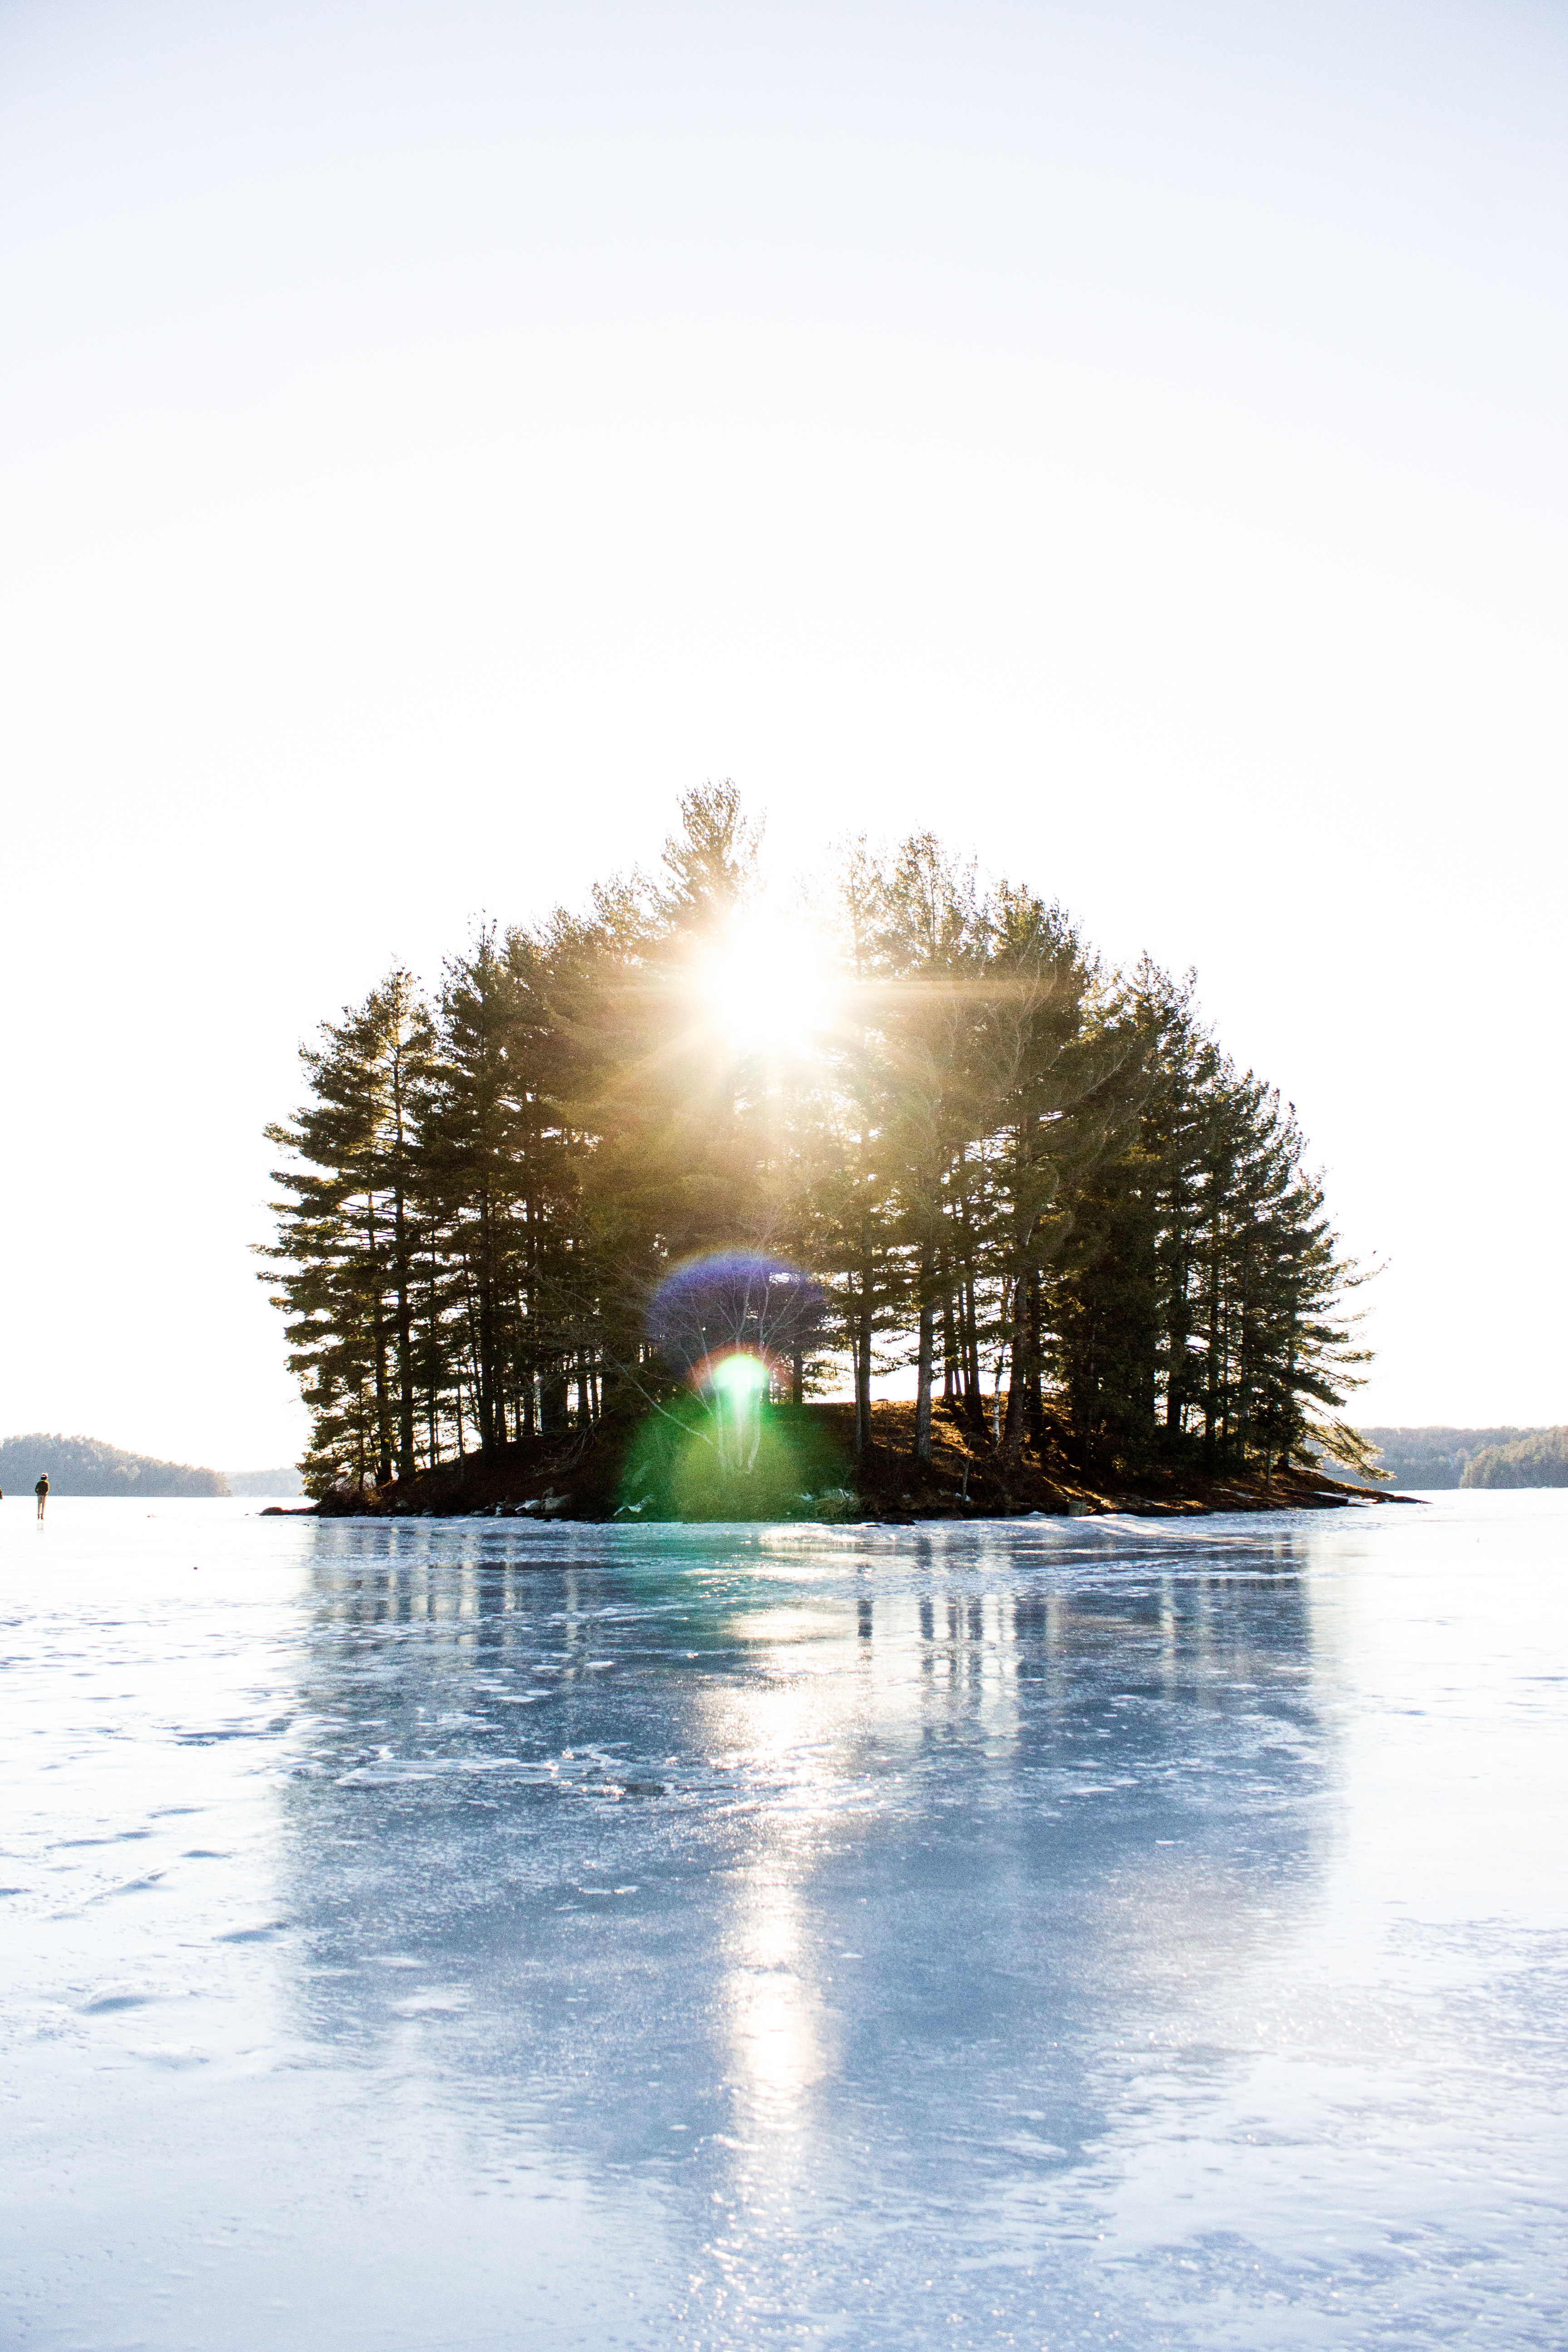 This is an island called Dead Man's Island located on Mary Lake in Huntsville, Ontario. The ice was thick enough to walk on, so one of my photographer friends and I decided to venture out onto it. On the way there, the wind was so strong it actually pushed us a little bit to the side on the icy lake. Once we reached the island we were stunned by the Canadian winter beauty. Whenever I look at this photo I imagine this island being the crown of the lake and the sun being the glimmering jewel on the crown. It certainly seems to have a royalty about it.